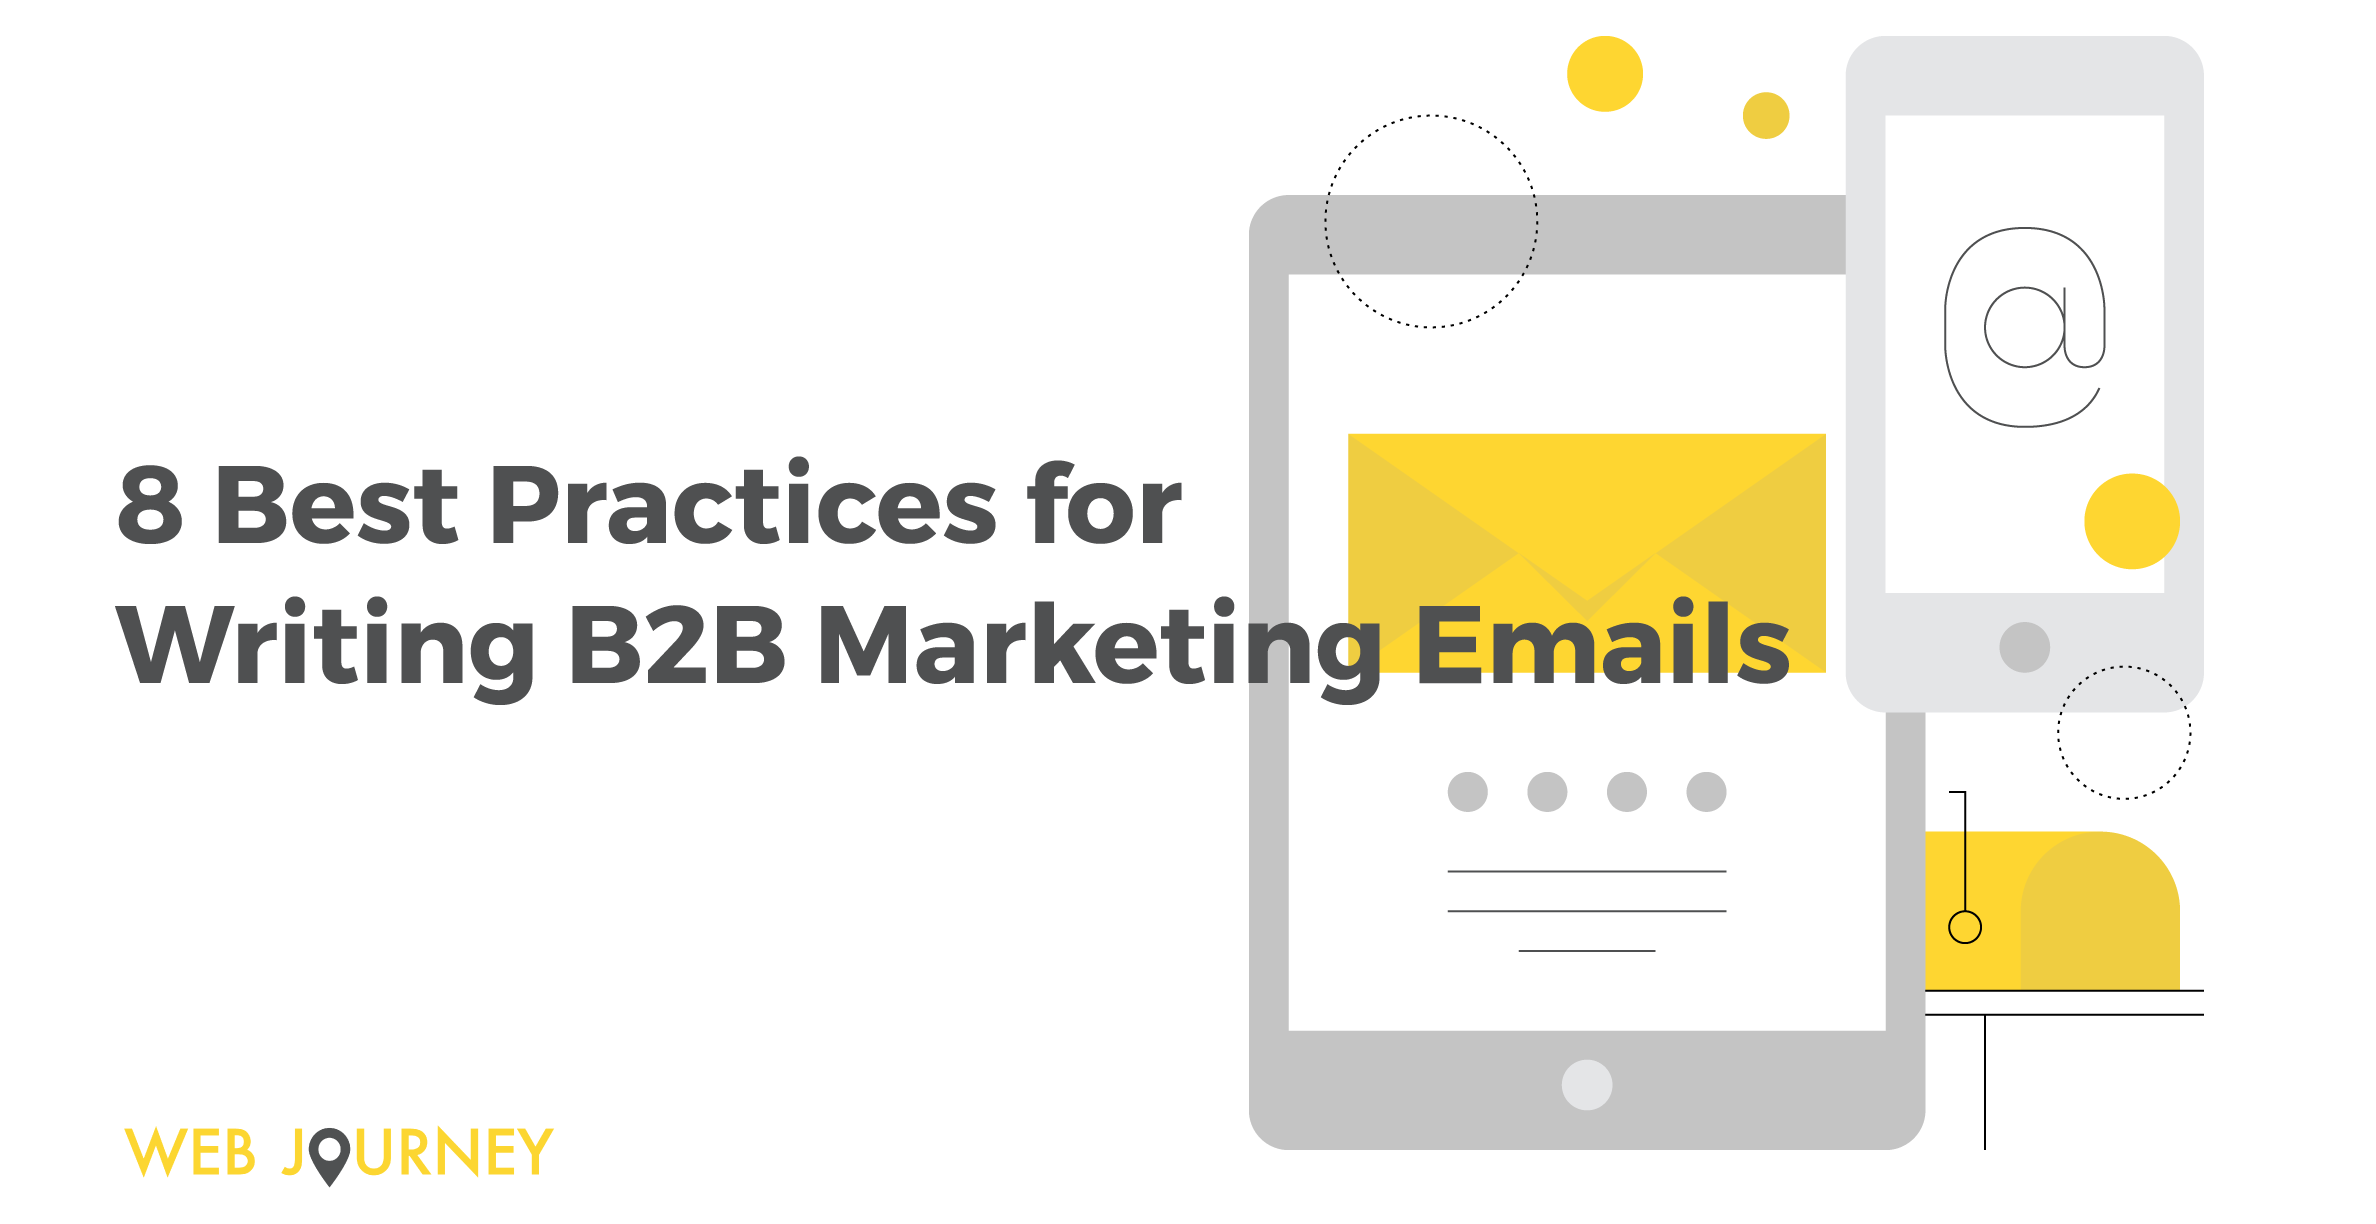 8 Best Practices for Writing B2B Marketing Emails